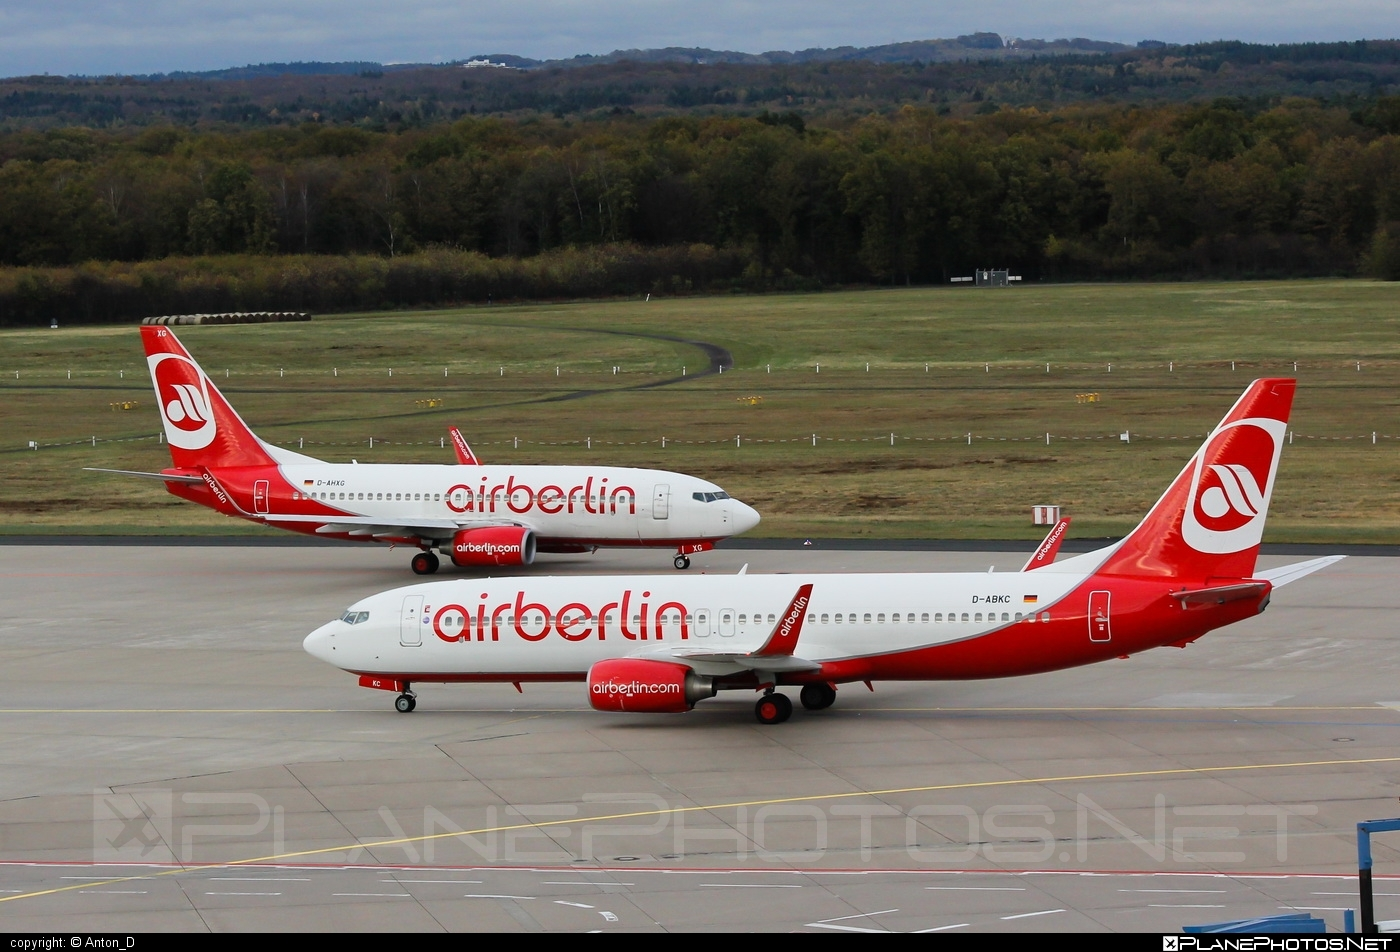 Boeing 737-800 - D-ABKC operated by Air Berlin #airberlin #b737 #b737nextgen #b737ng #boeing #boeing737